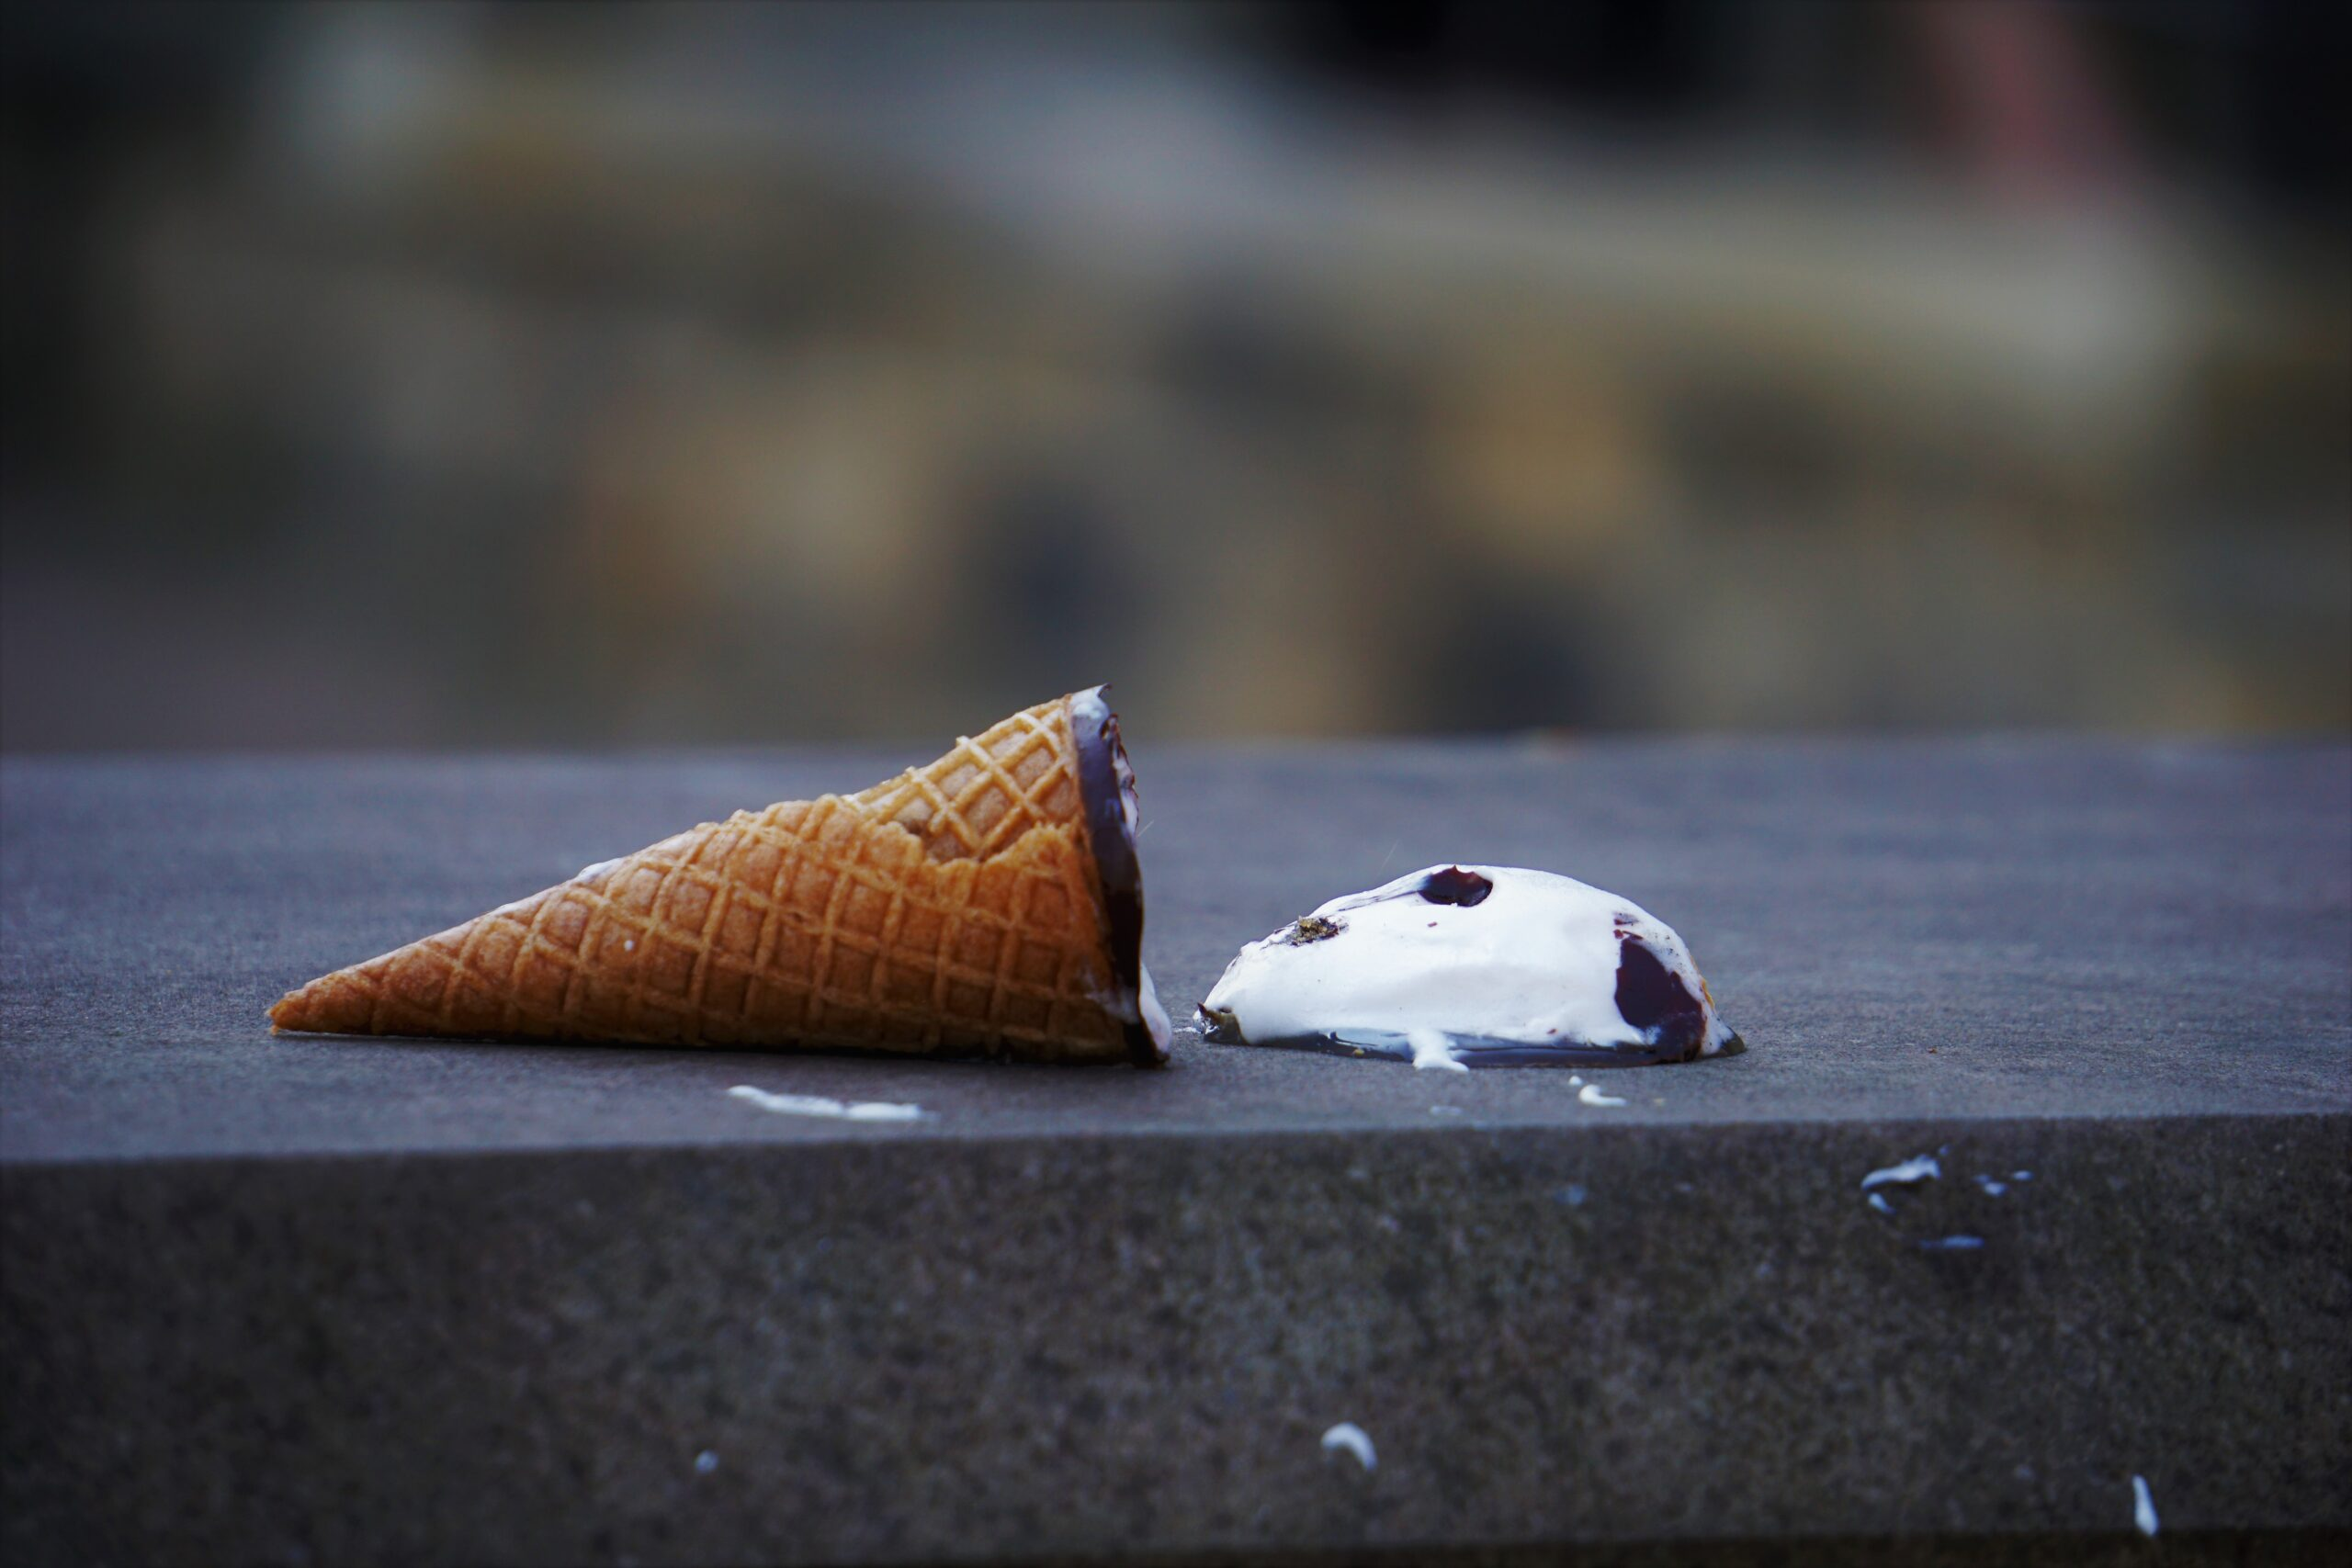 Is any disappointment worse than the disappointment of dropping an ice-cream cone on the sidewalk?